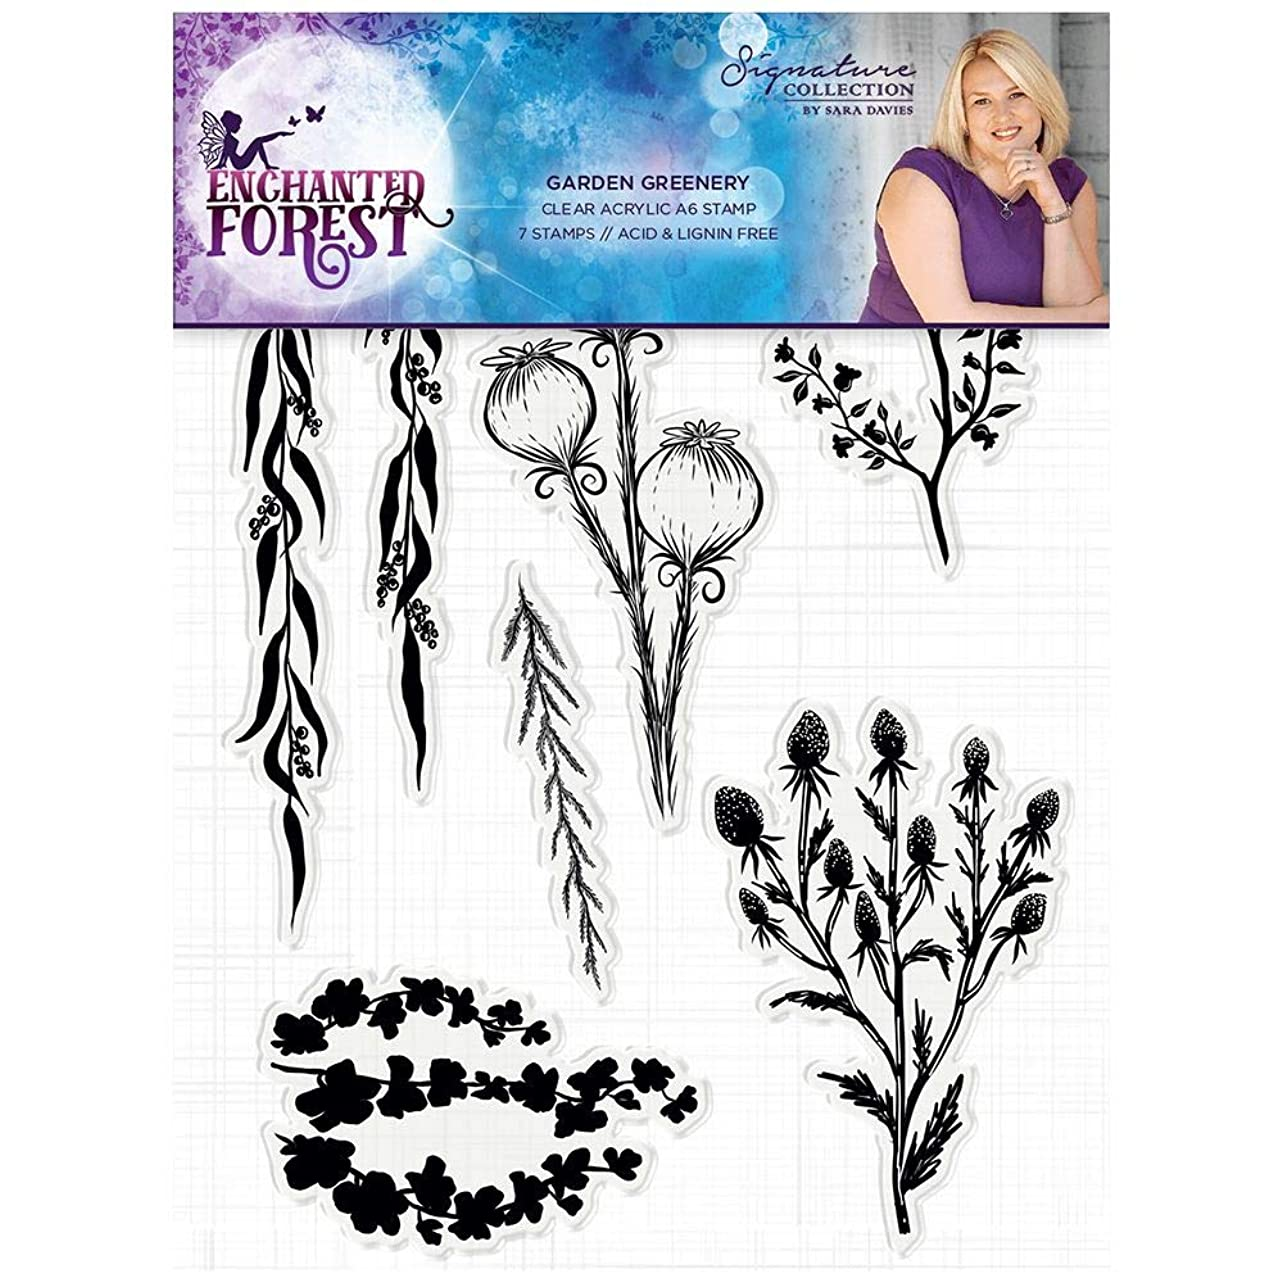 Sara Signature S-EF-ST-GG Enchanted Forest Garden Greenery Clear Acrylic Stamp, Silver eazuai350